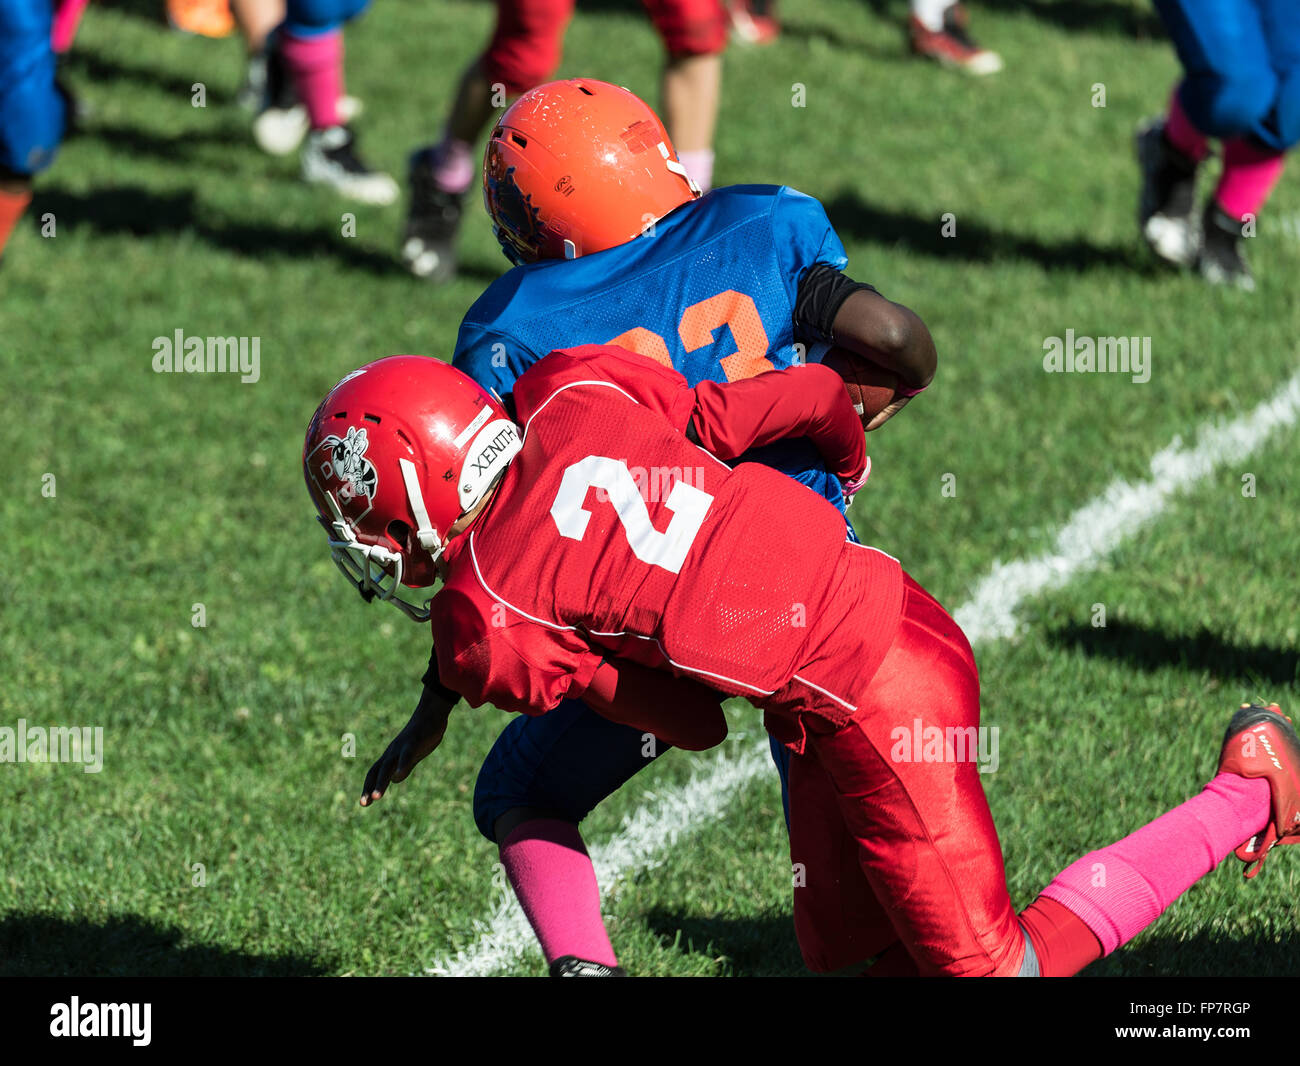 Tackle during a Pop Warner football game, USA - Stock Image